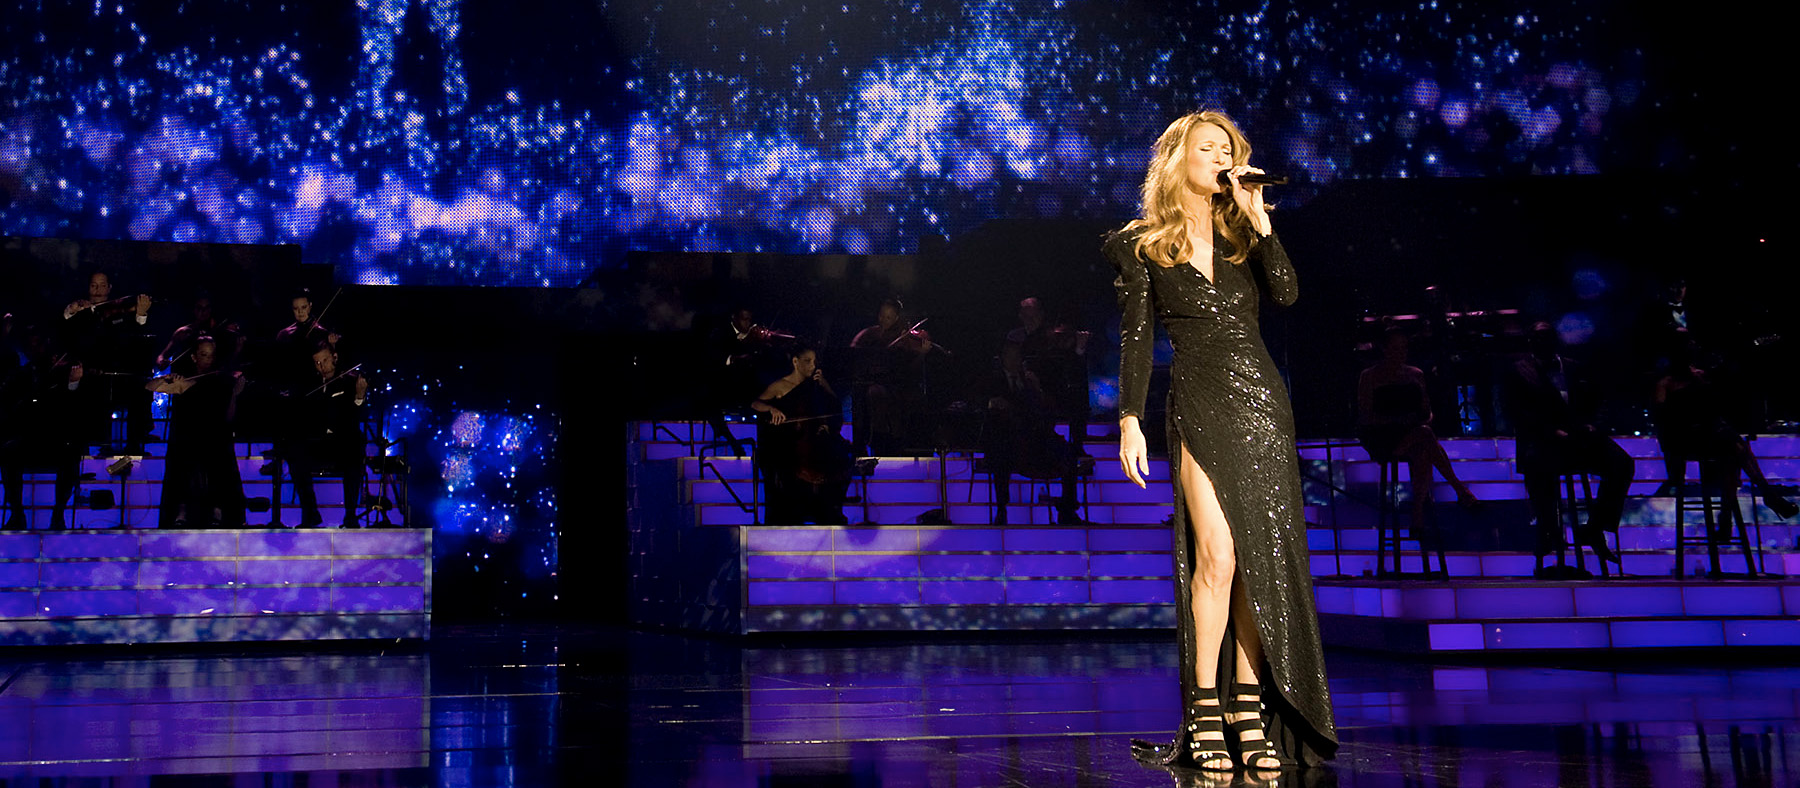 celine dion, music, epic rights, licensing